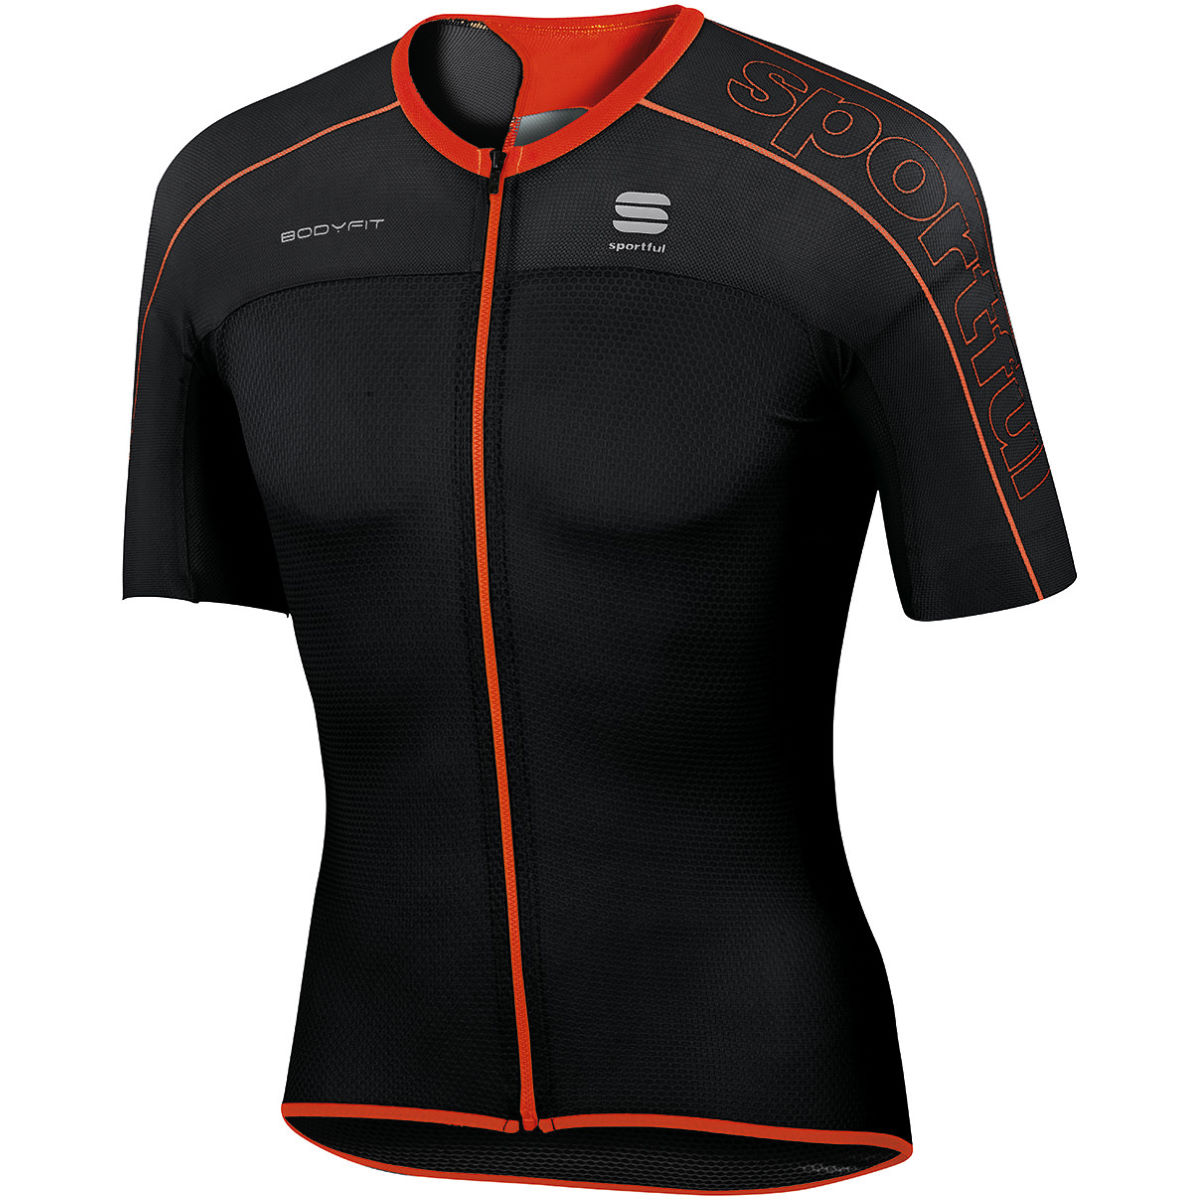 Maillot Sportful BodyFit Ultralight - L Noir/Rouge Maillots